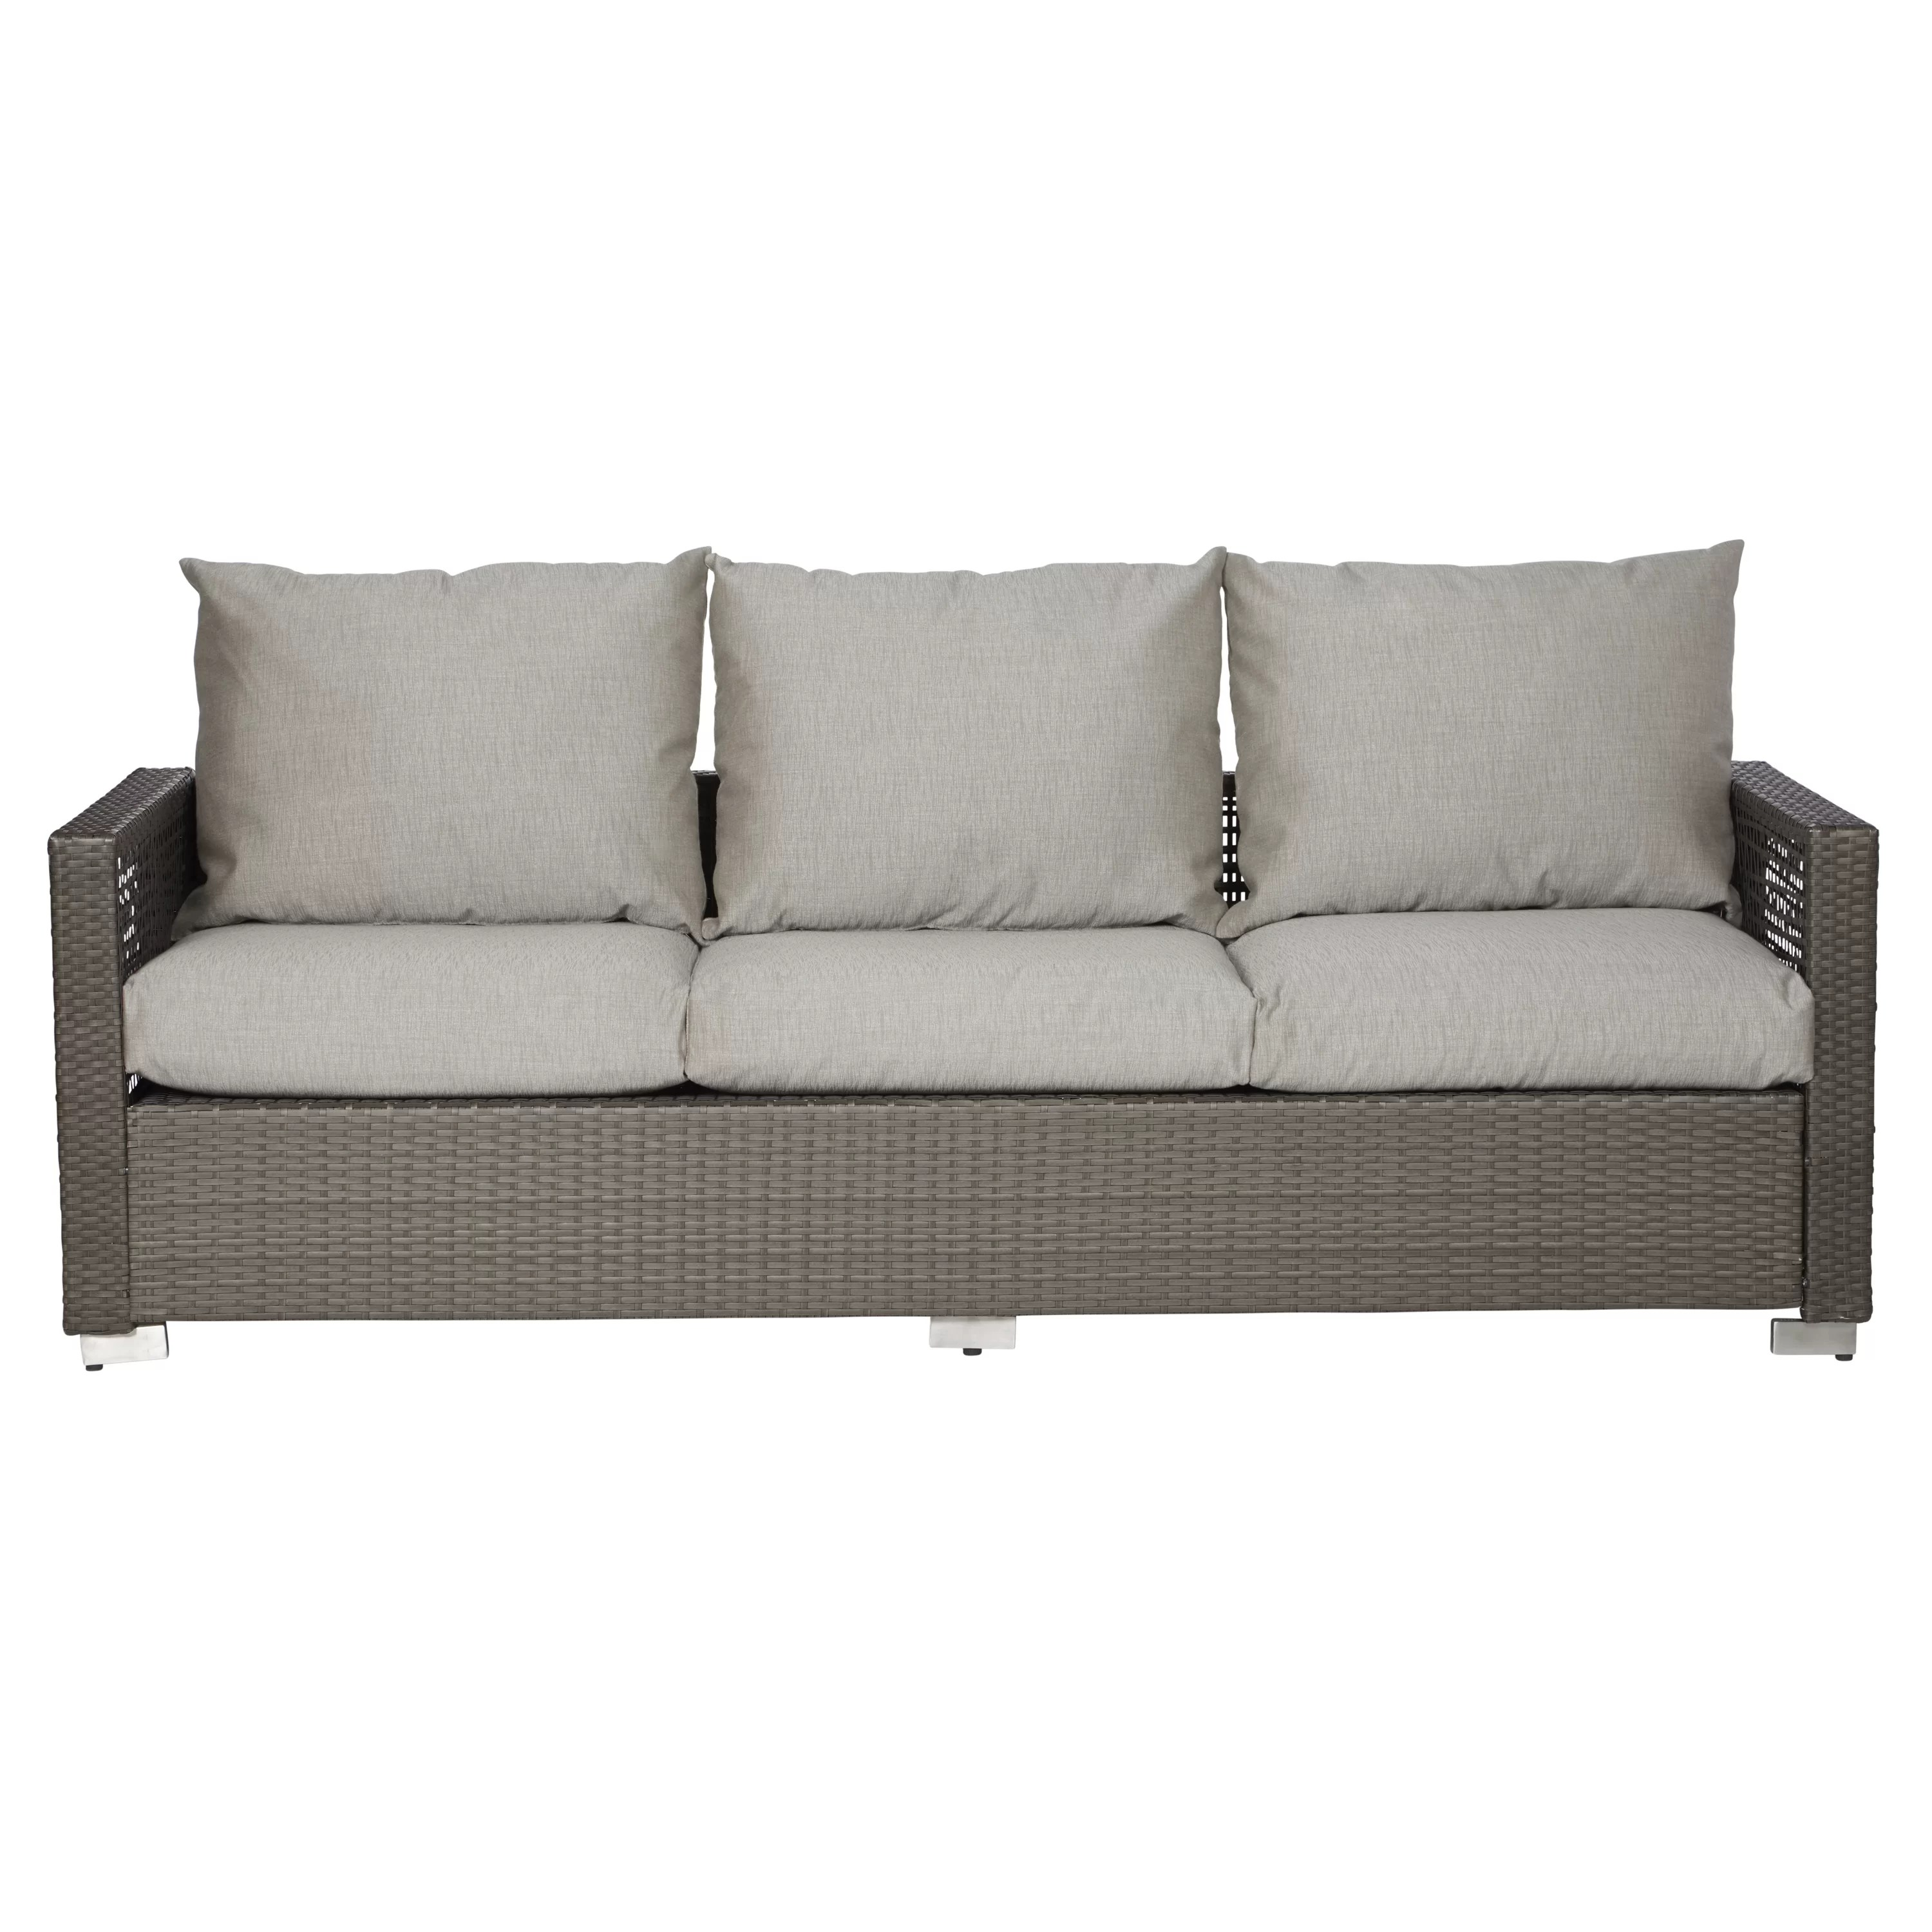 Outdoor Couch Mcmanis Outdoor Open Weave Rattan Patio Sofa With Cushions